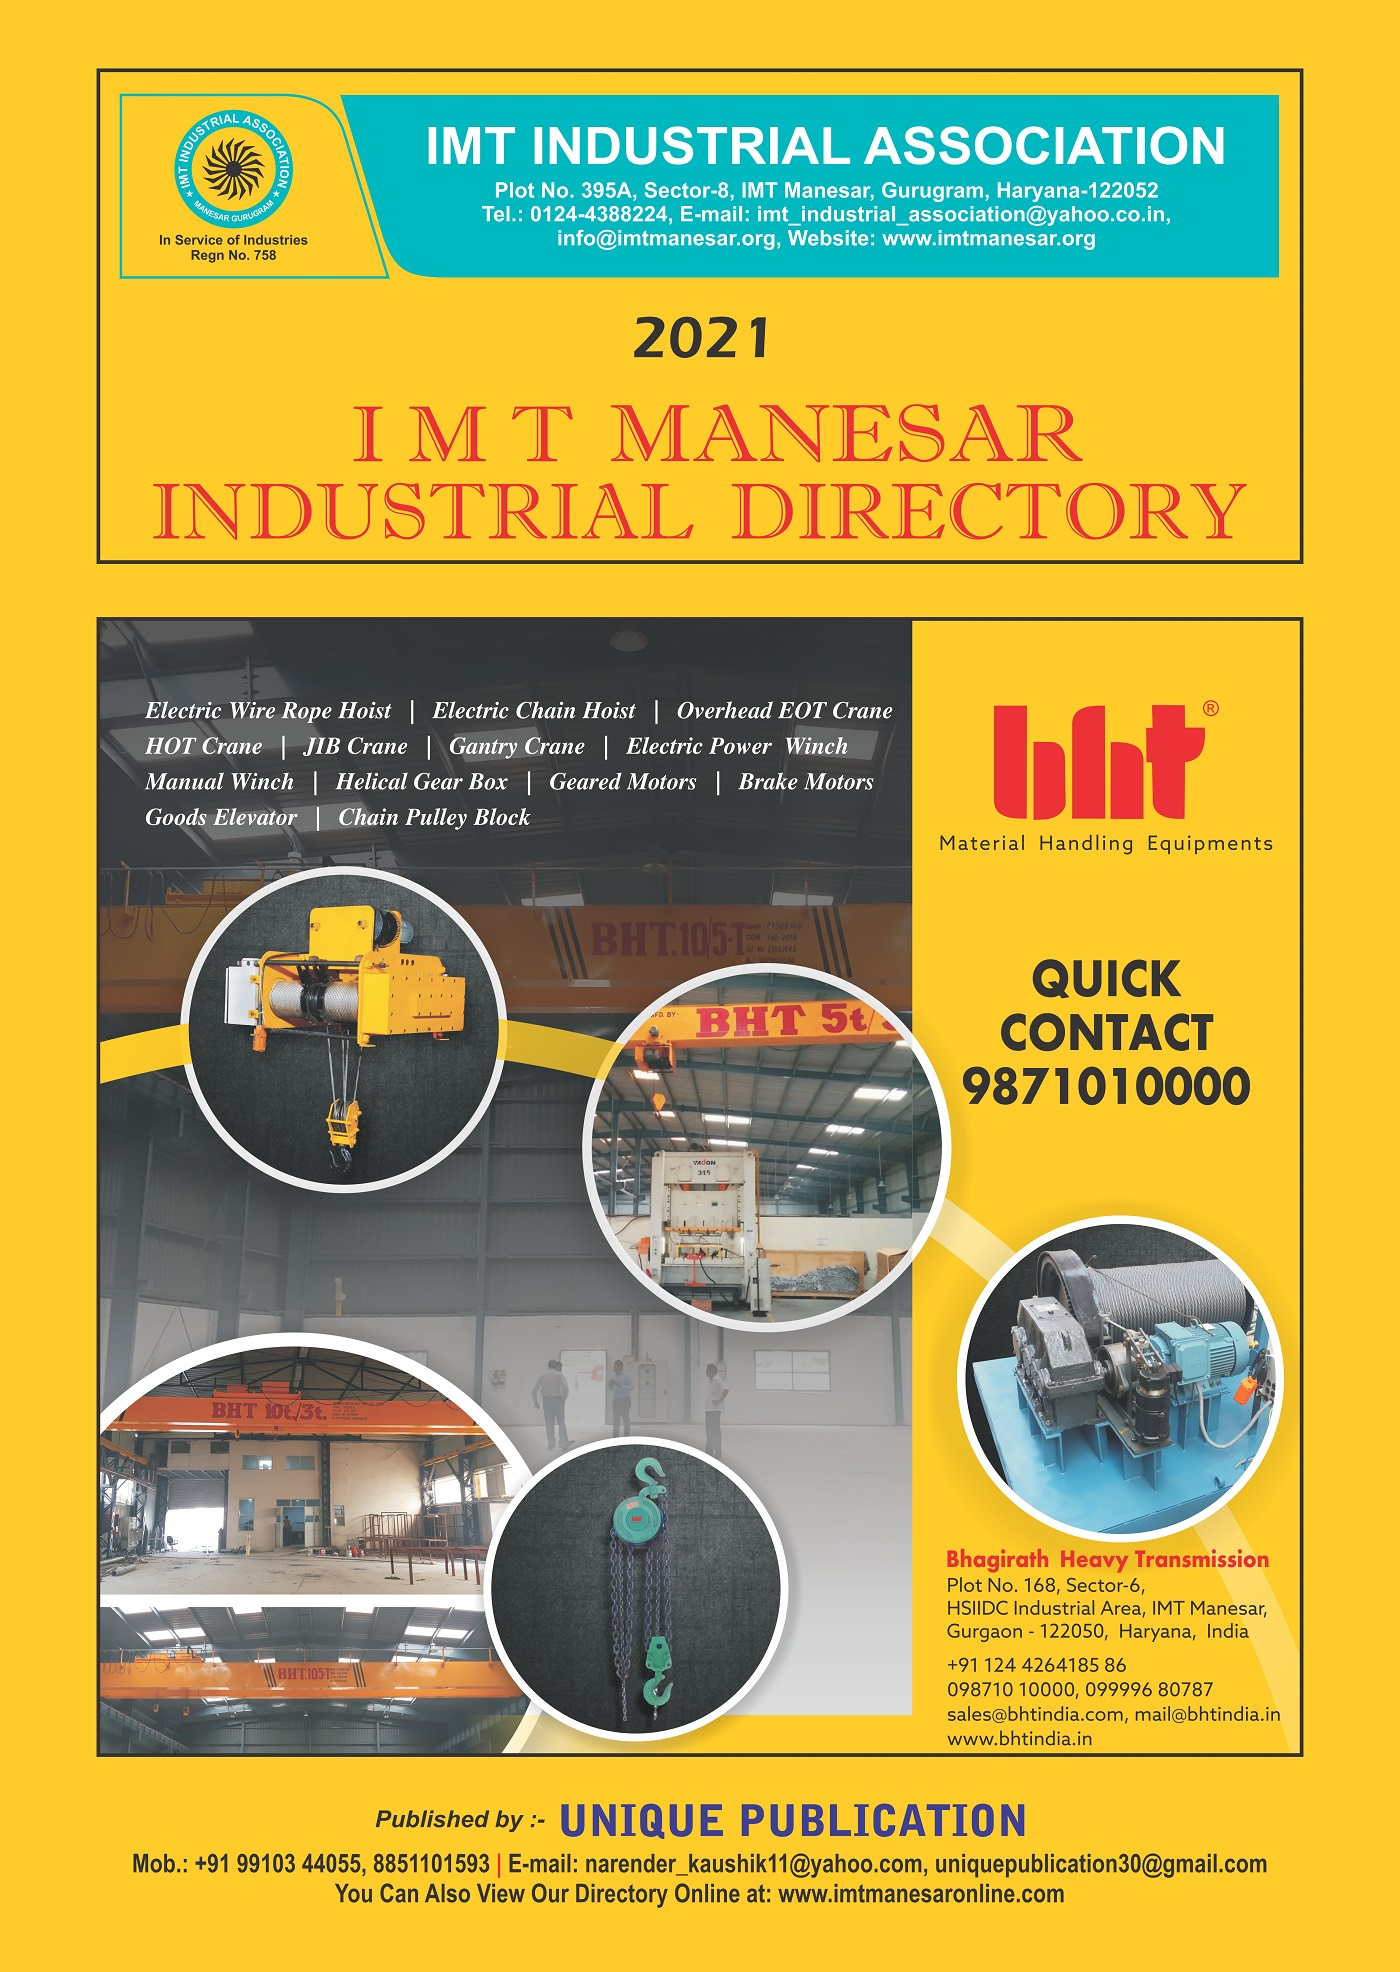 IMT Manesar | Unique Publication | Business Listing Directories